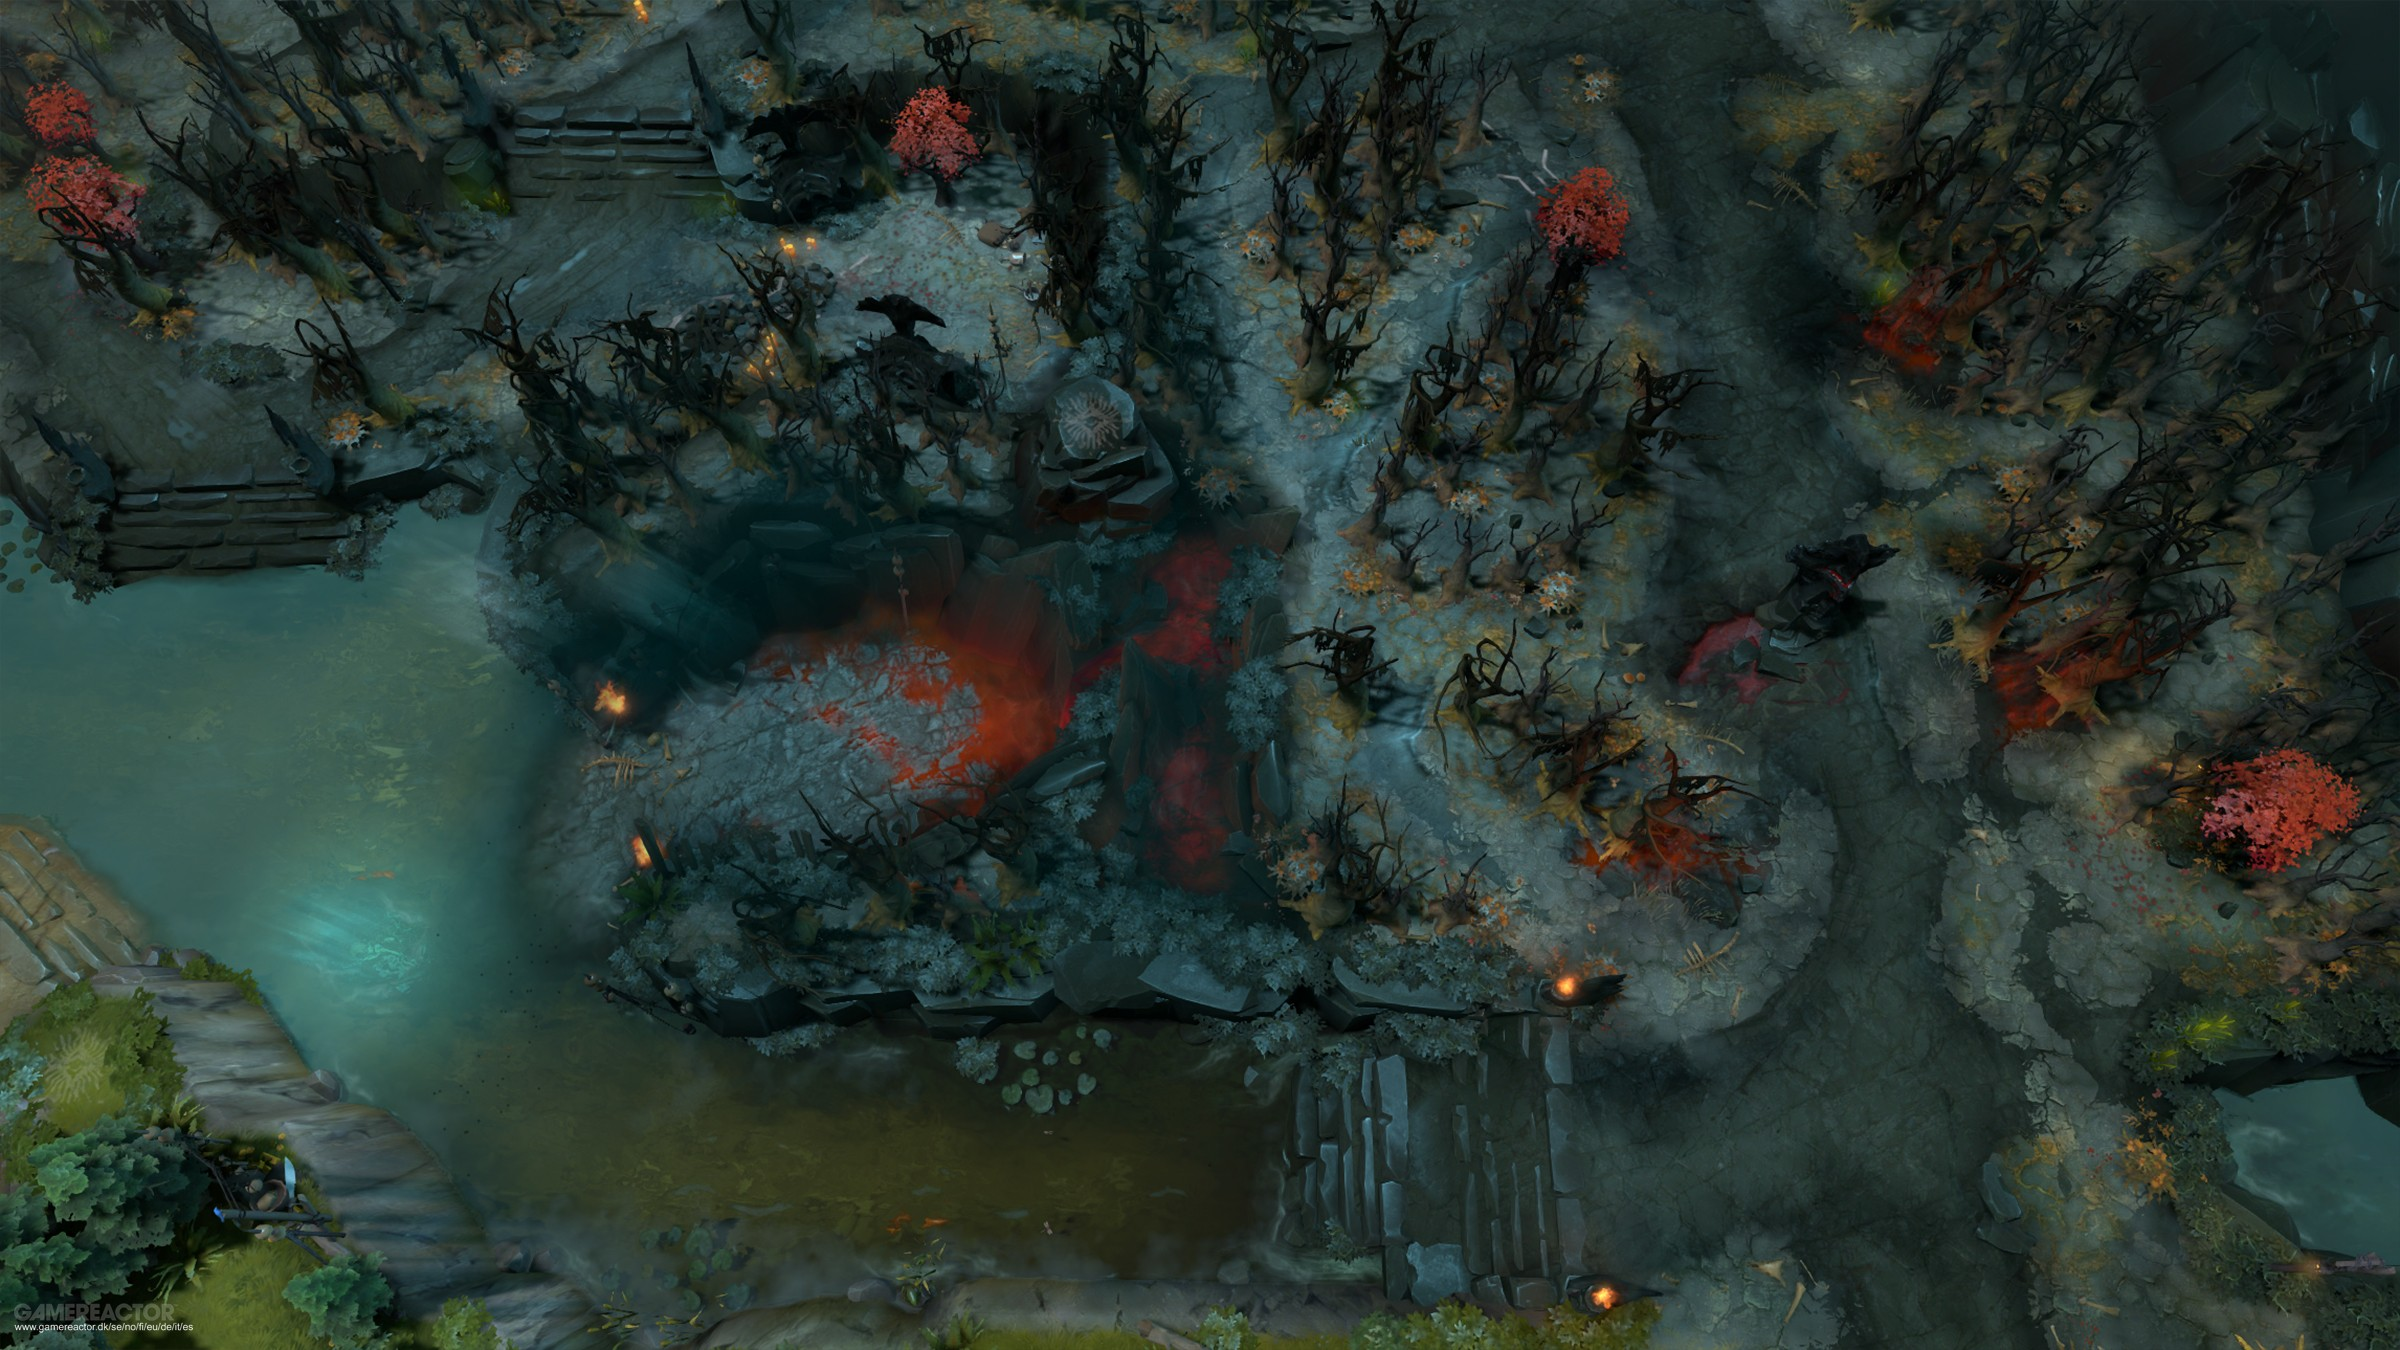 Pictures of Latest Dota 2 update changes up the map layout 7/7